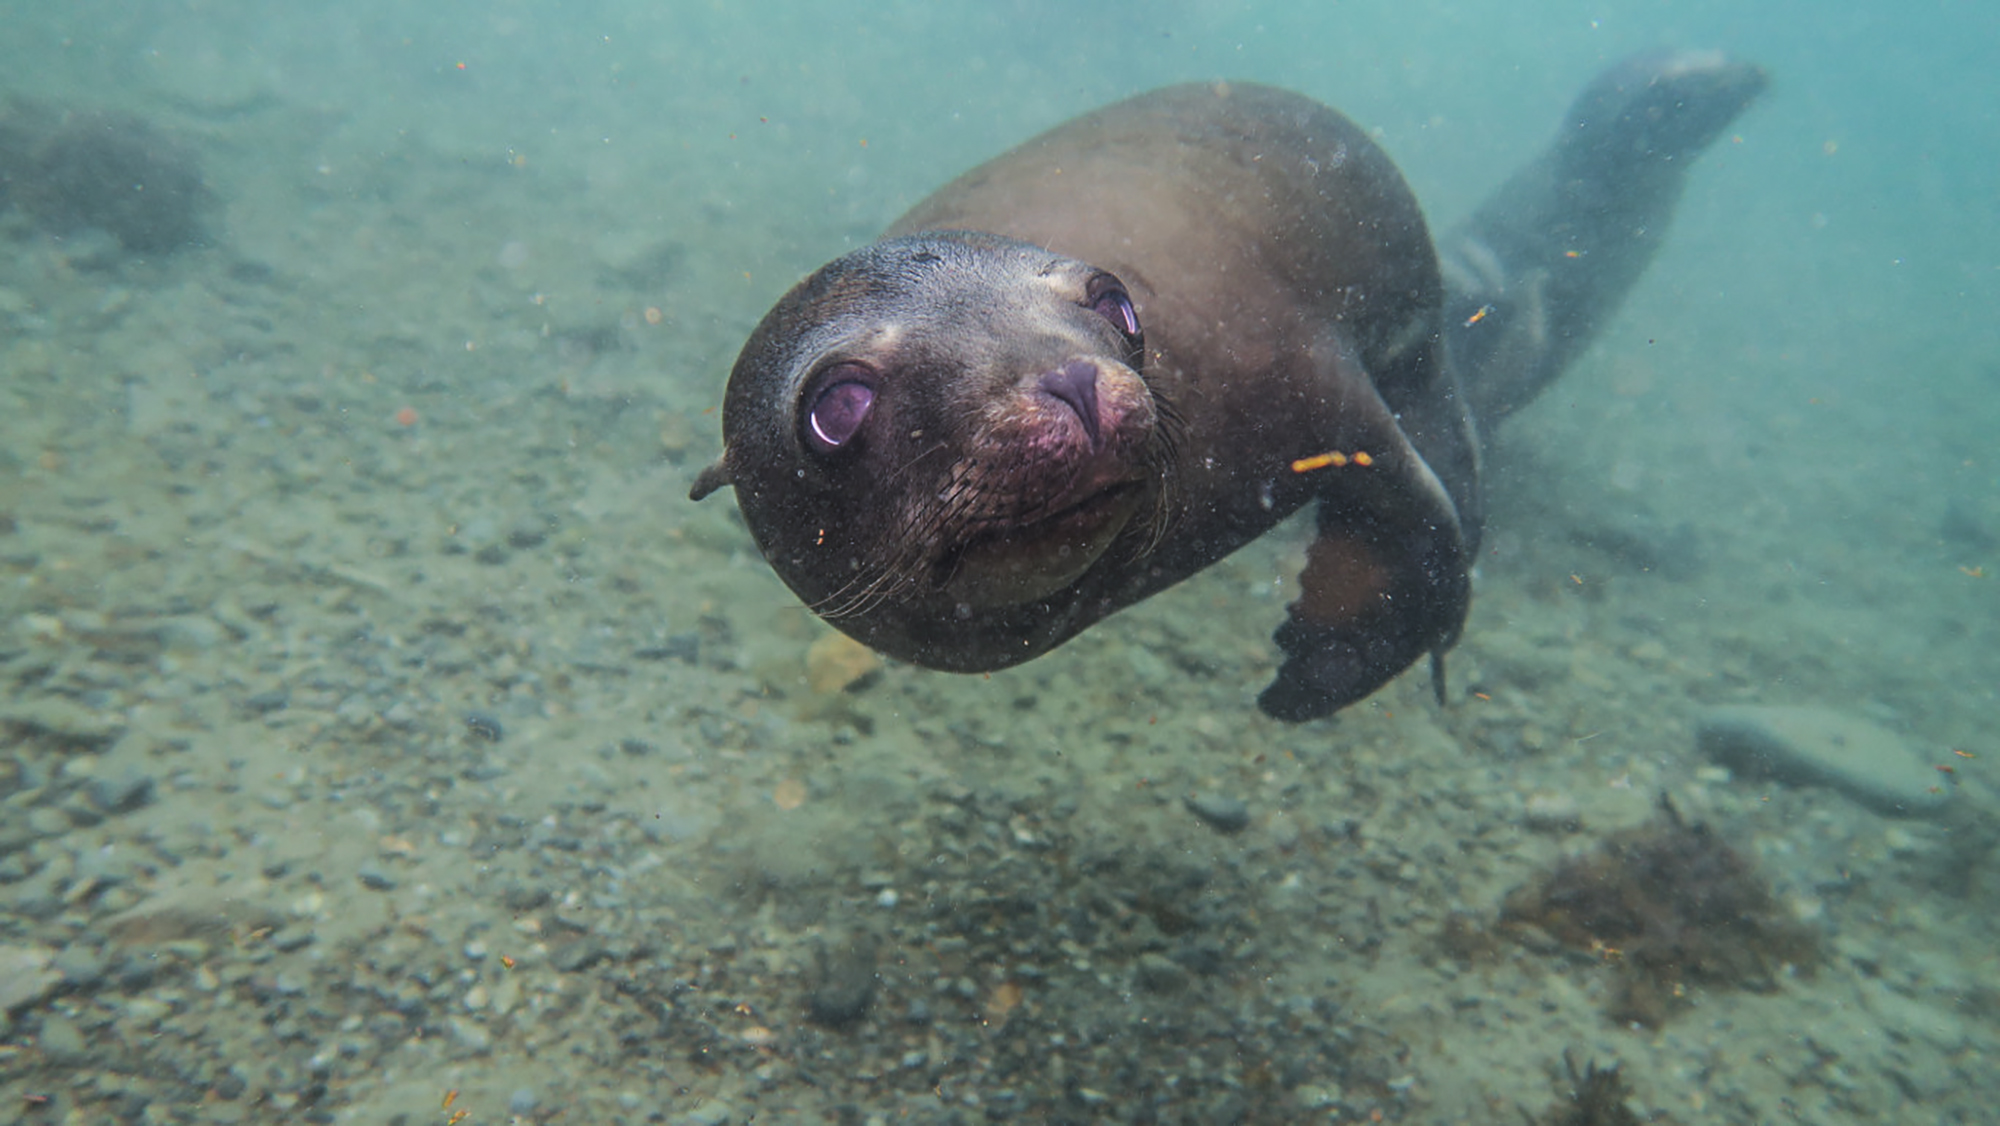 A playful sea lion with beautiful eyes at Cedros Island